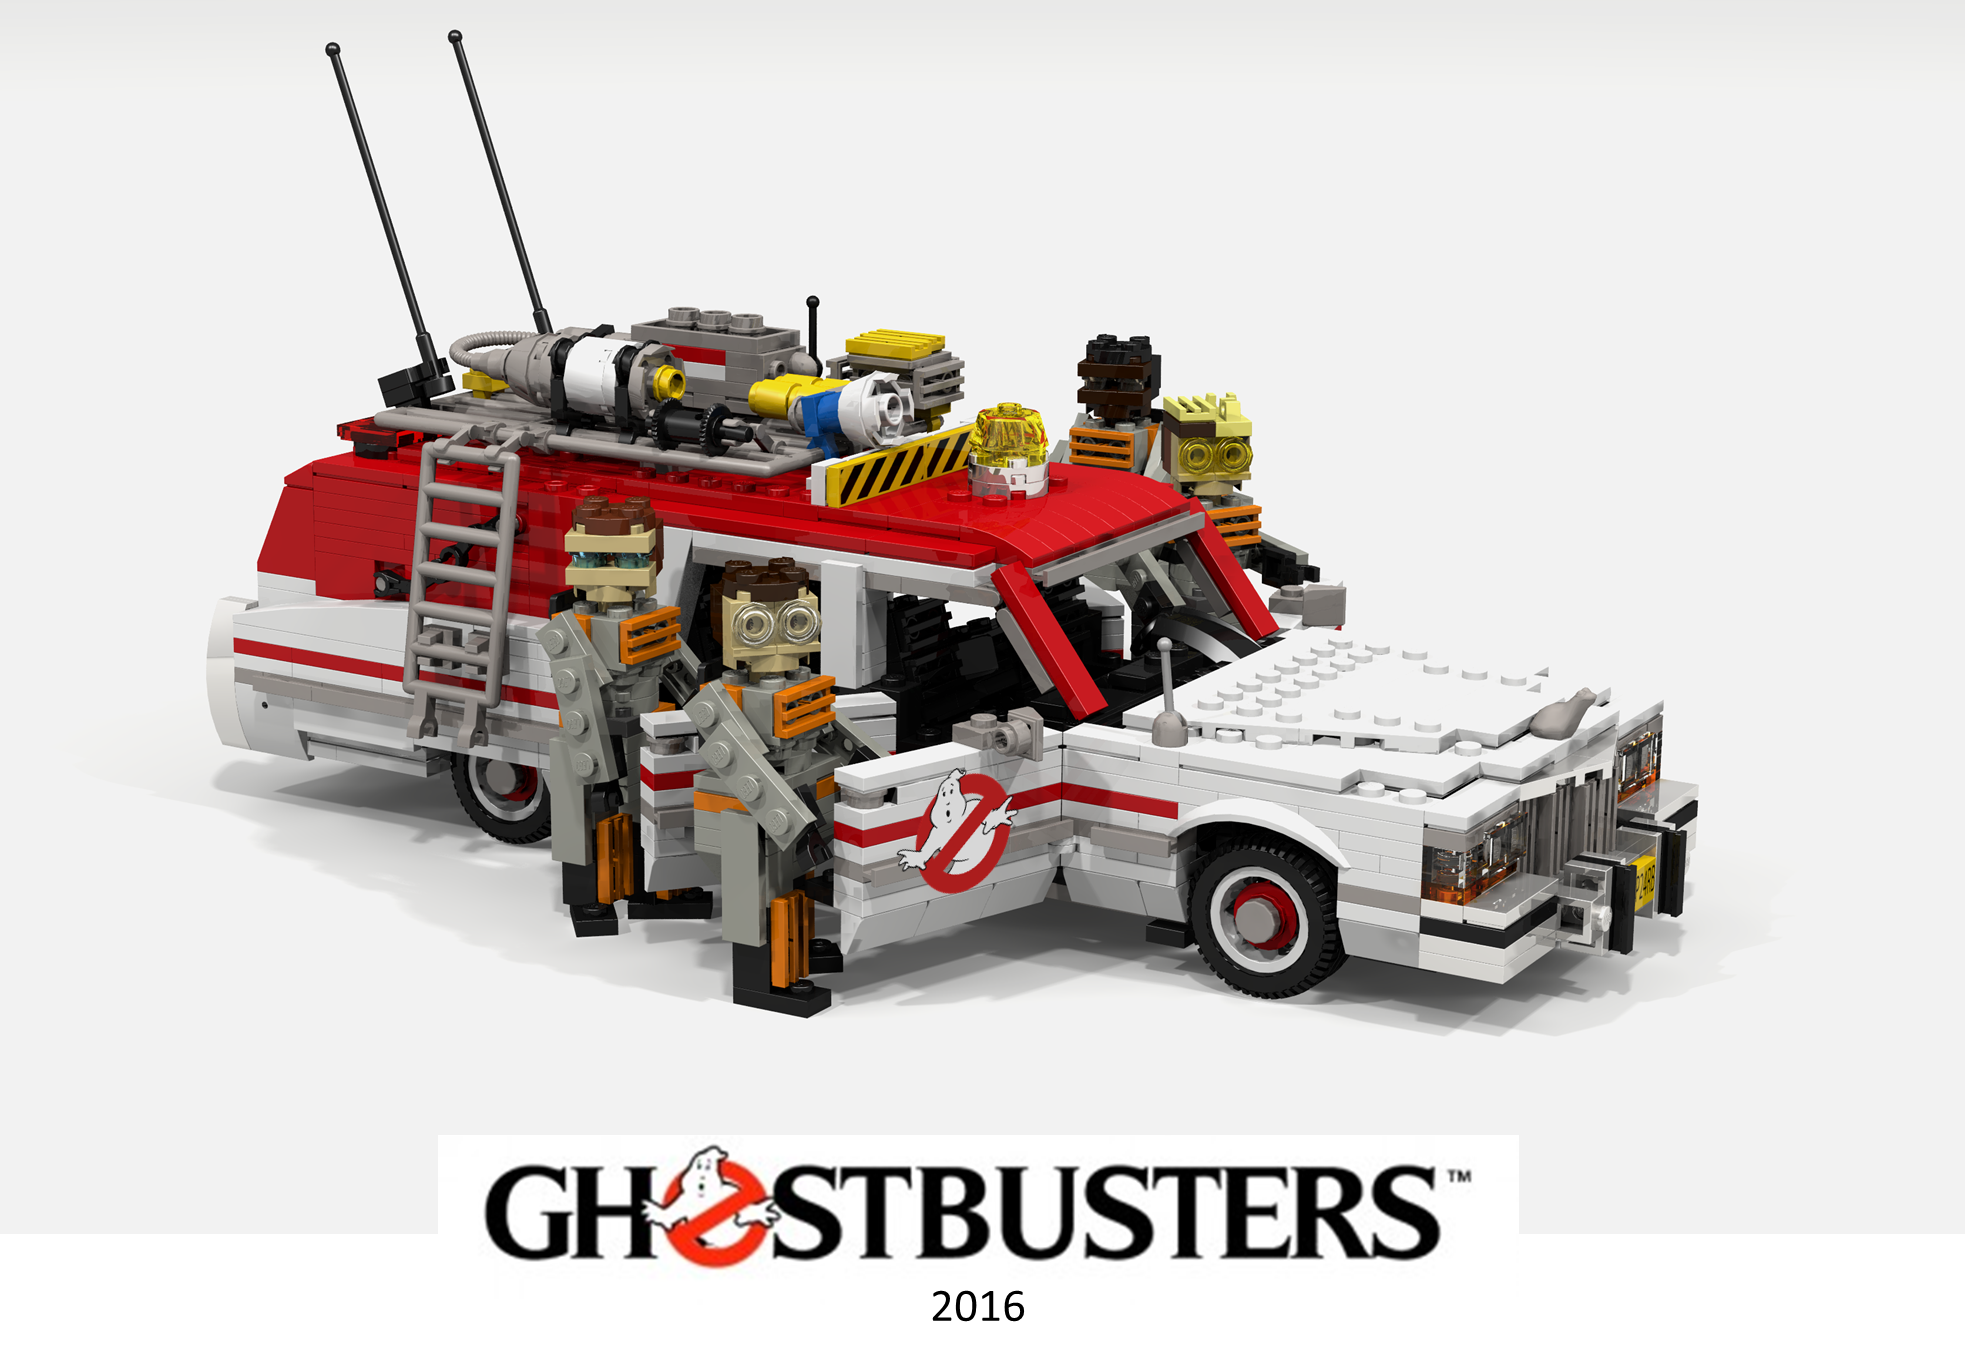 cadillac_1985_series_70_fleetwood_-_ghostbusters_ecto1_02.png